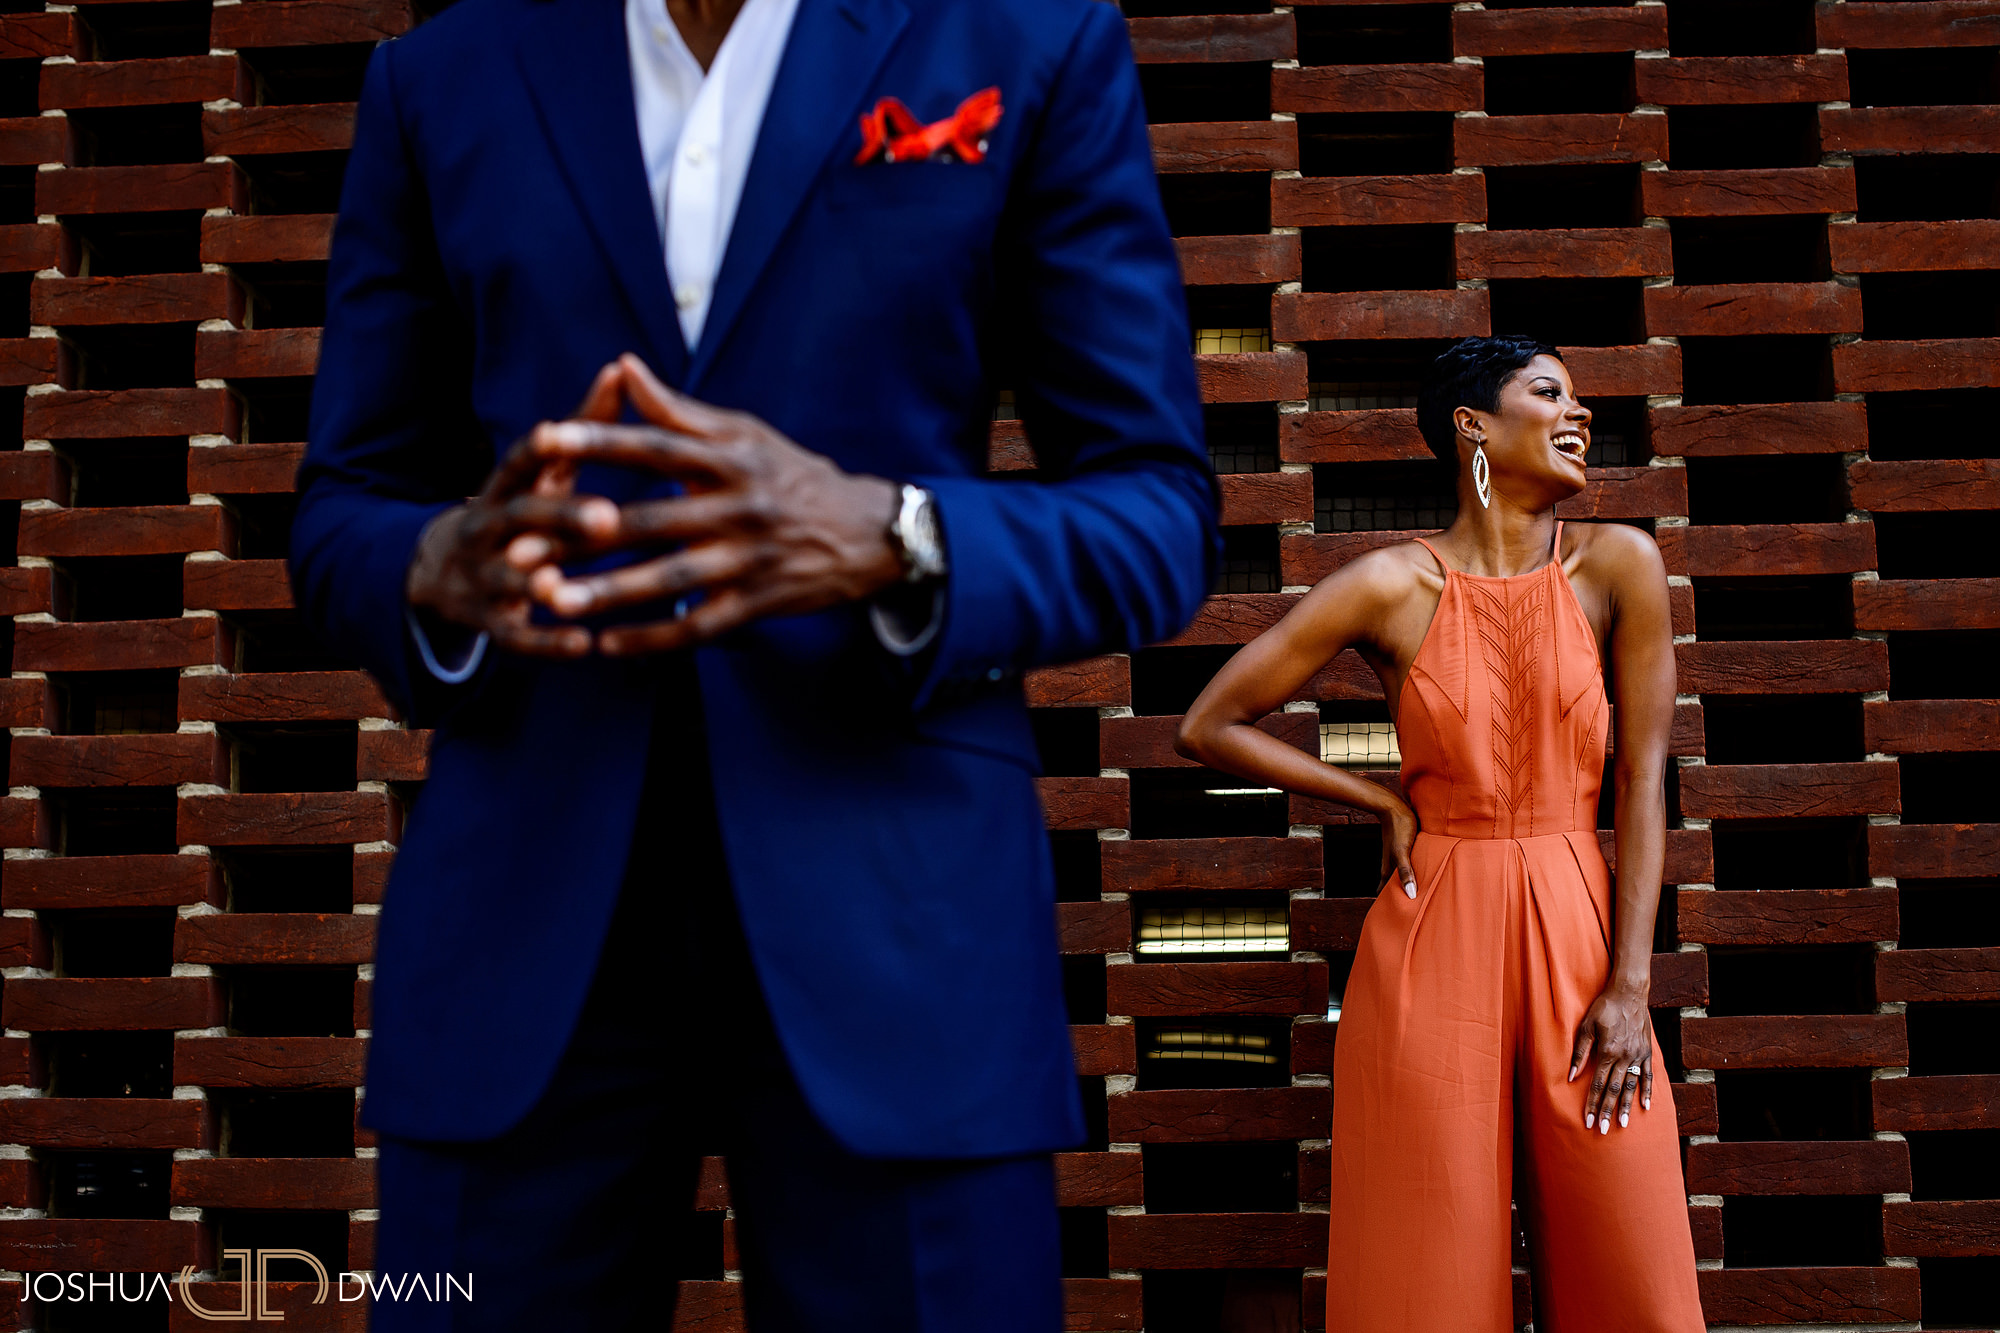 joshua-dwain-engagement-gallery-004